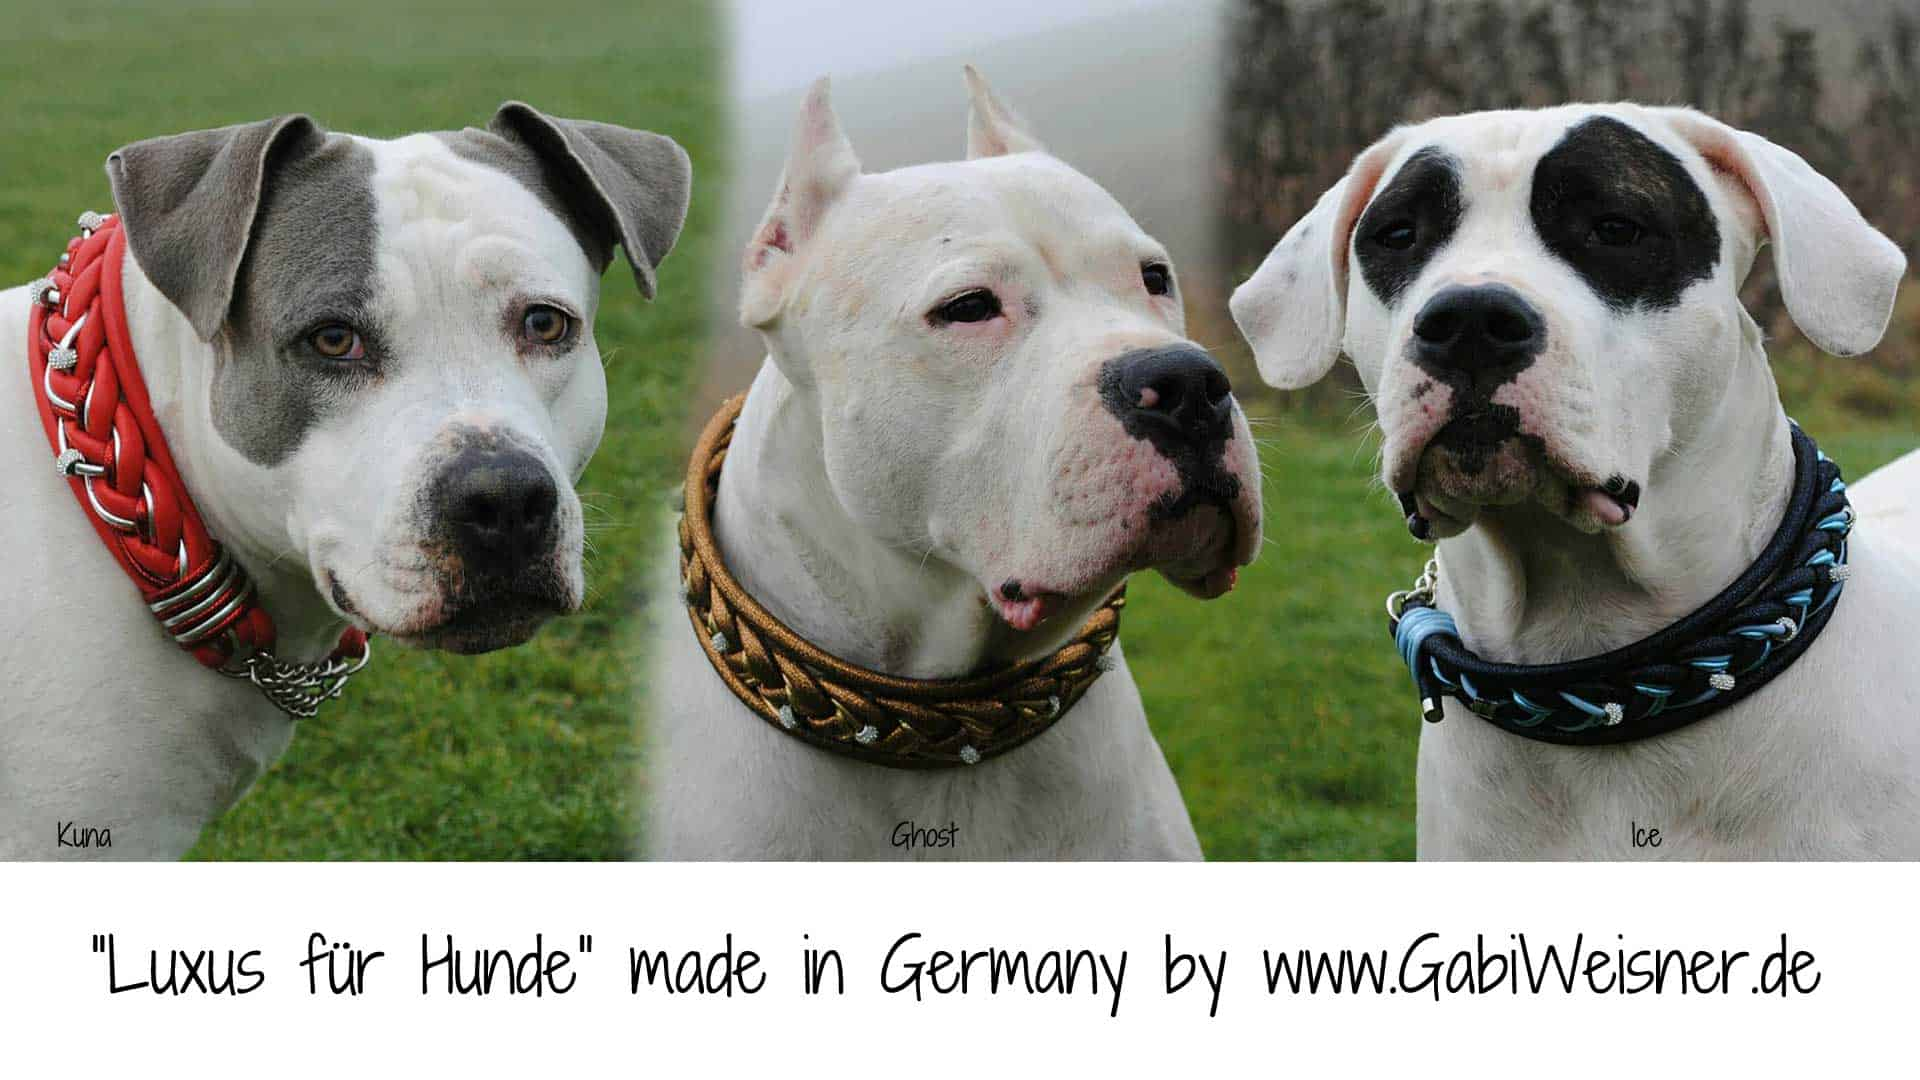 Luxus für Hunde made in Germany by GabiWeisner.de